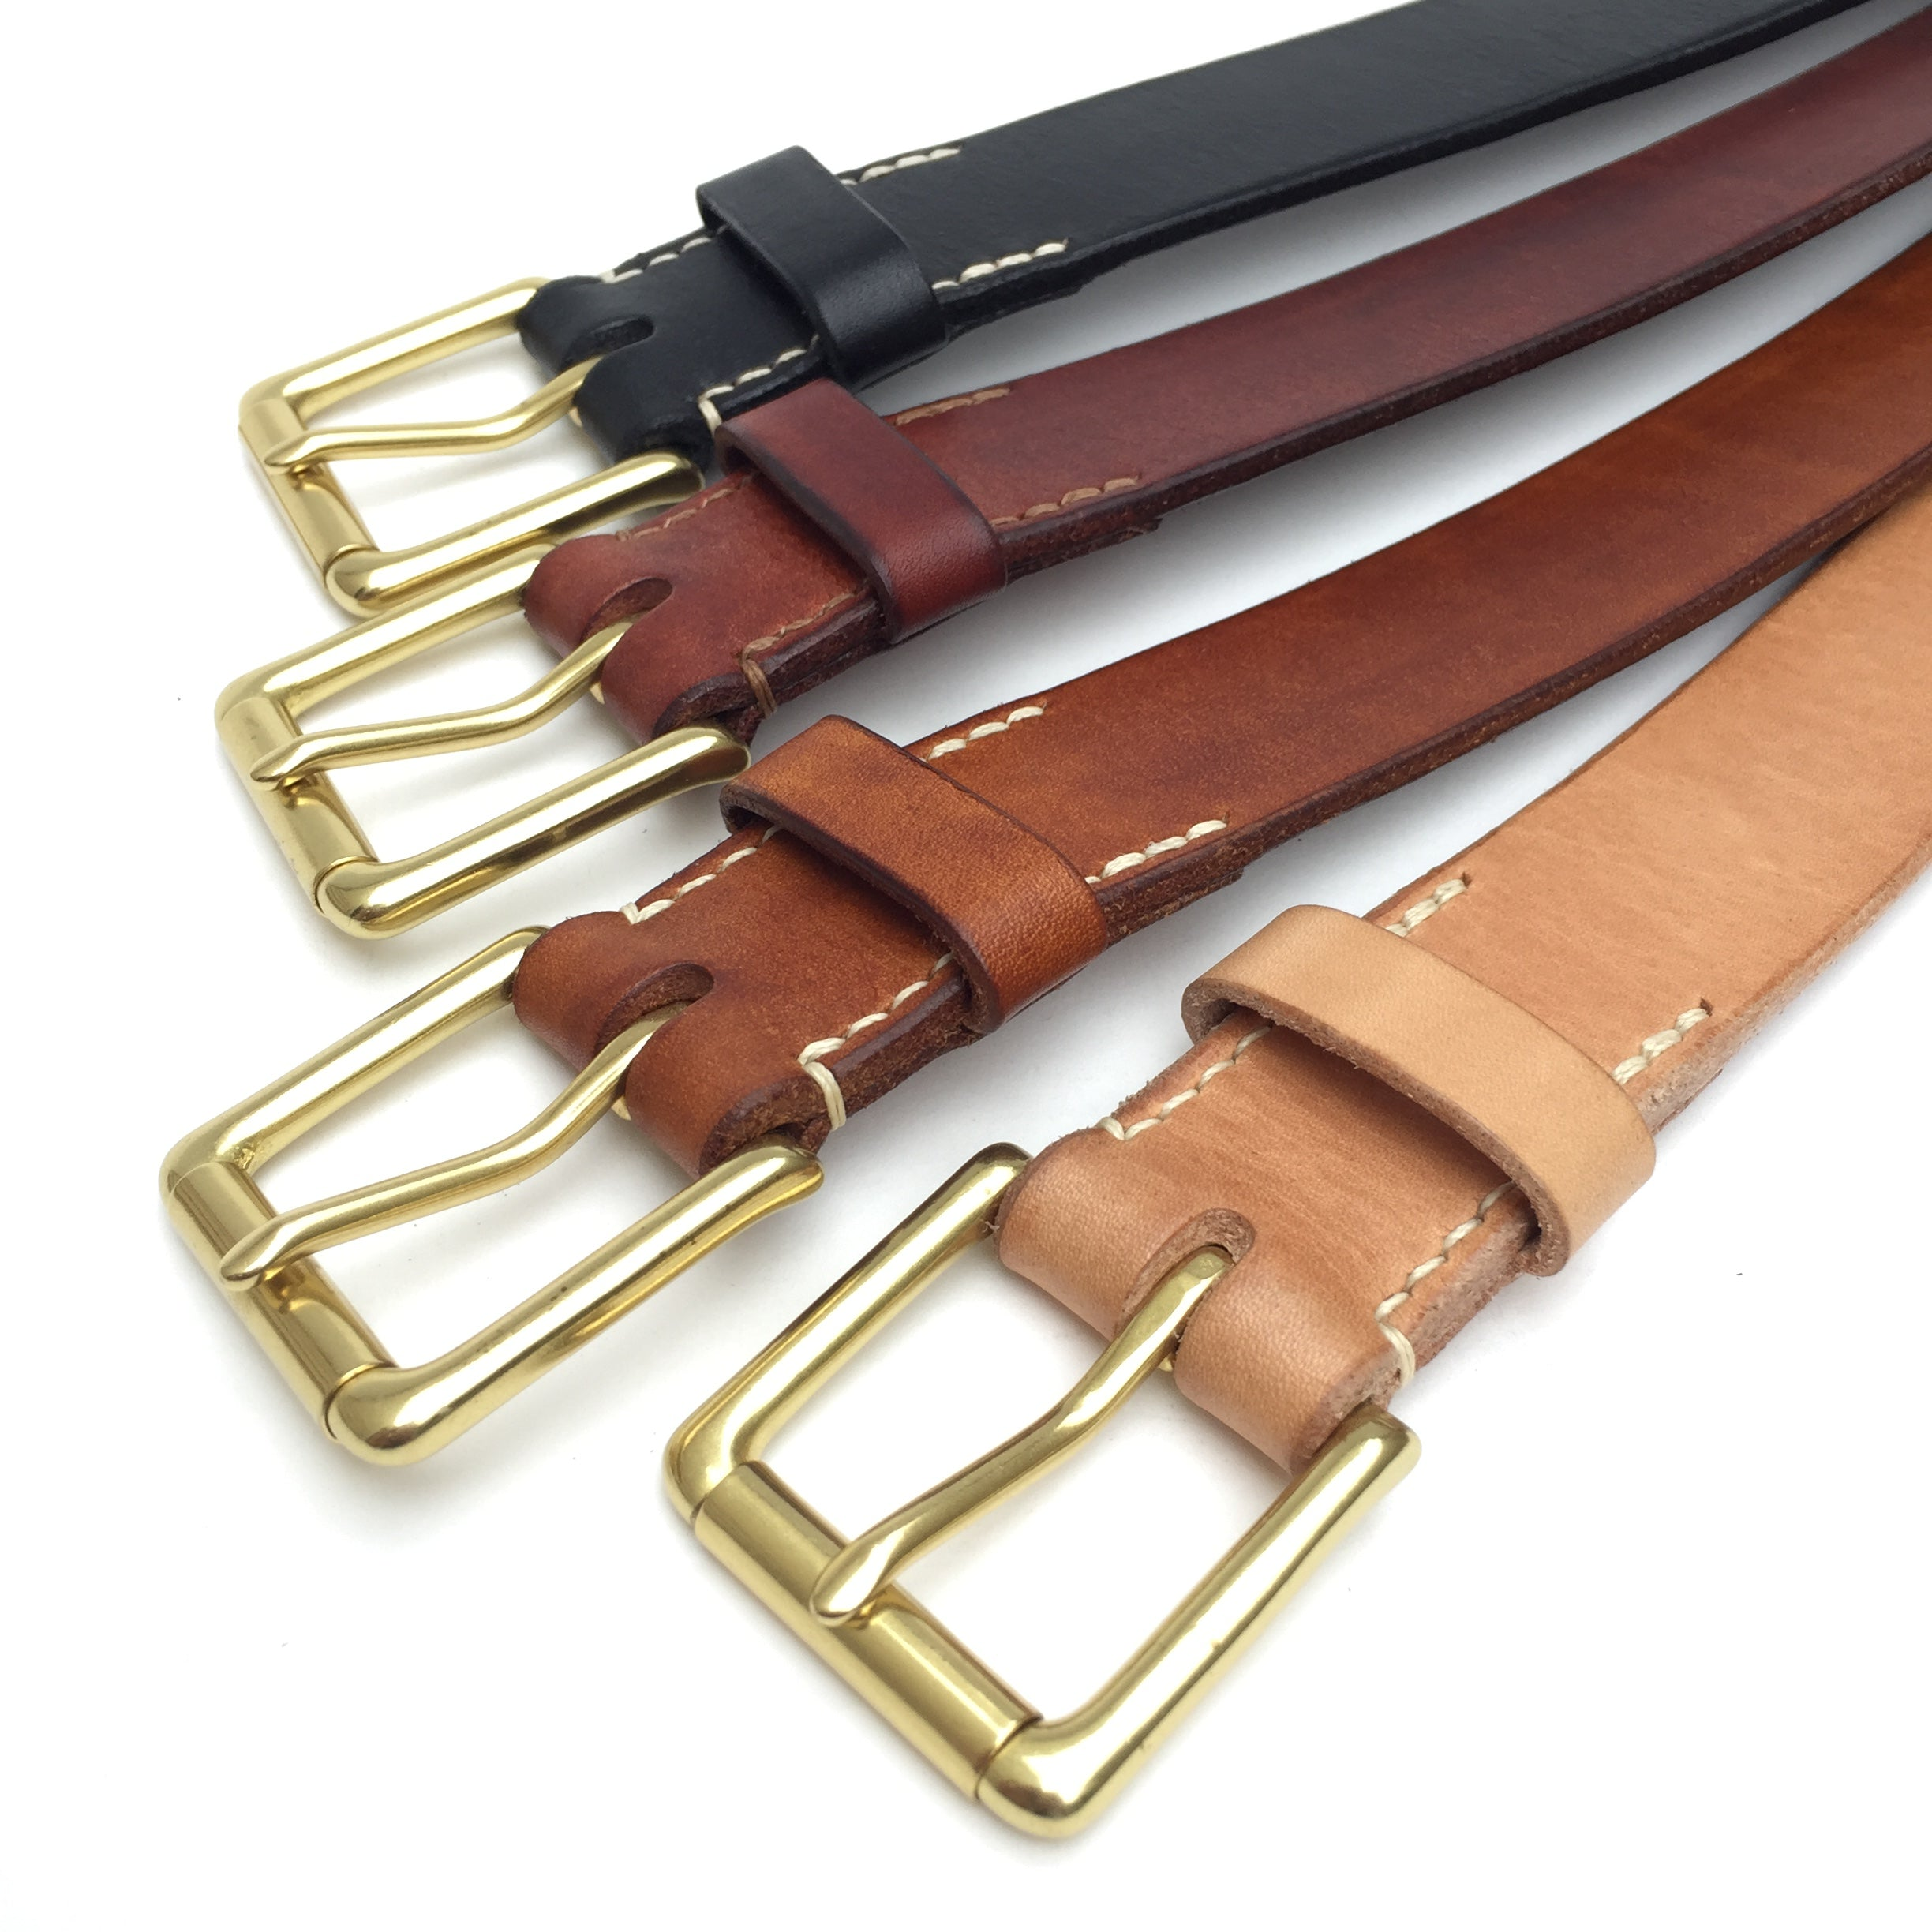 Belt & Band Bespoke Handmade Vegetable Tanned Colours Leather Belt Solid Brass Roller Buckle Custom Size length SA